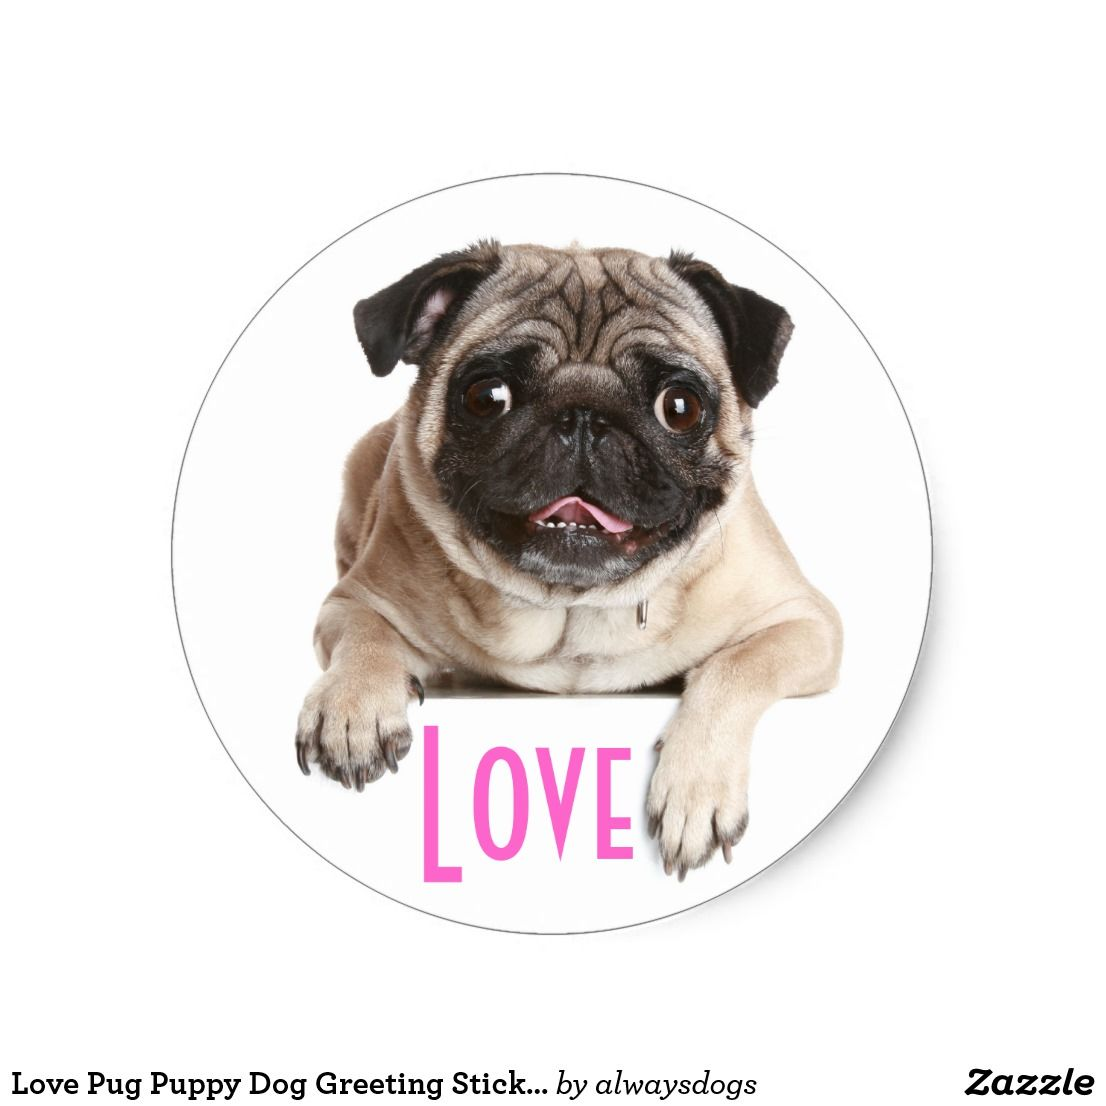 Love Pug Puppy Dog Greeting Stickers Zazzle Com Training Your